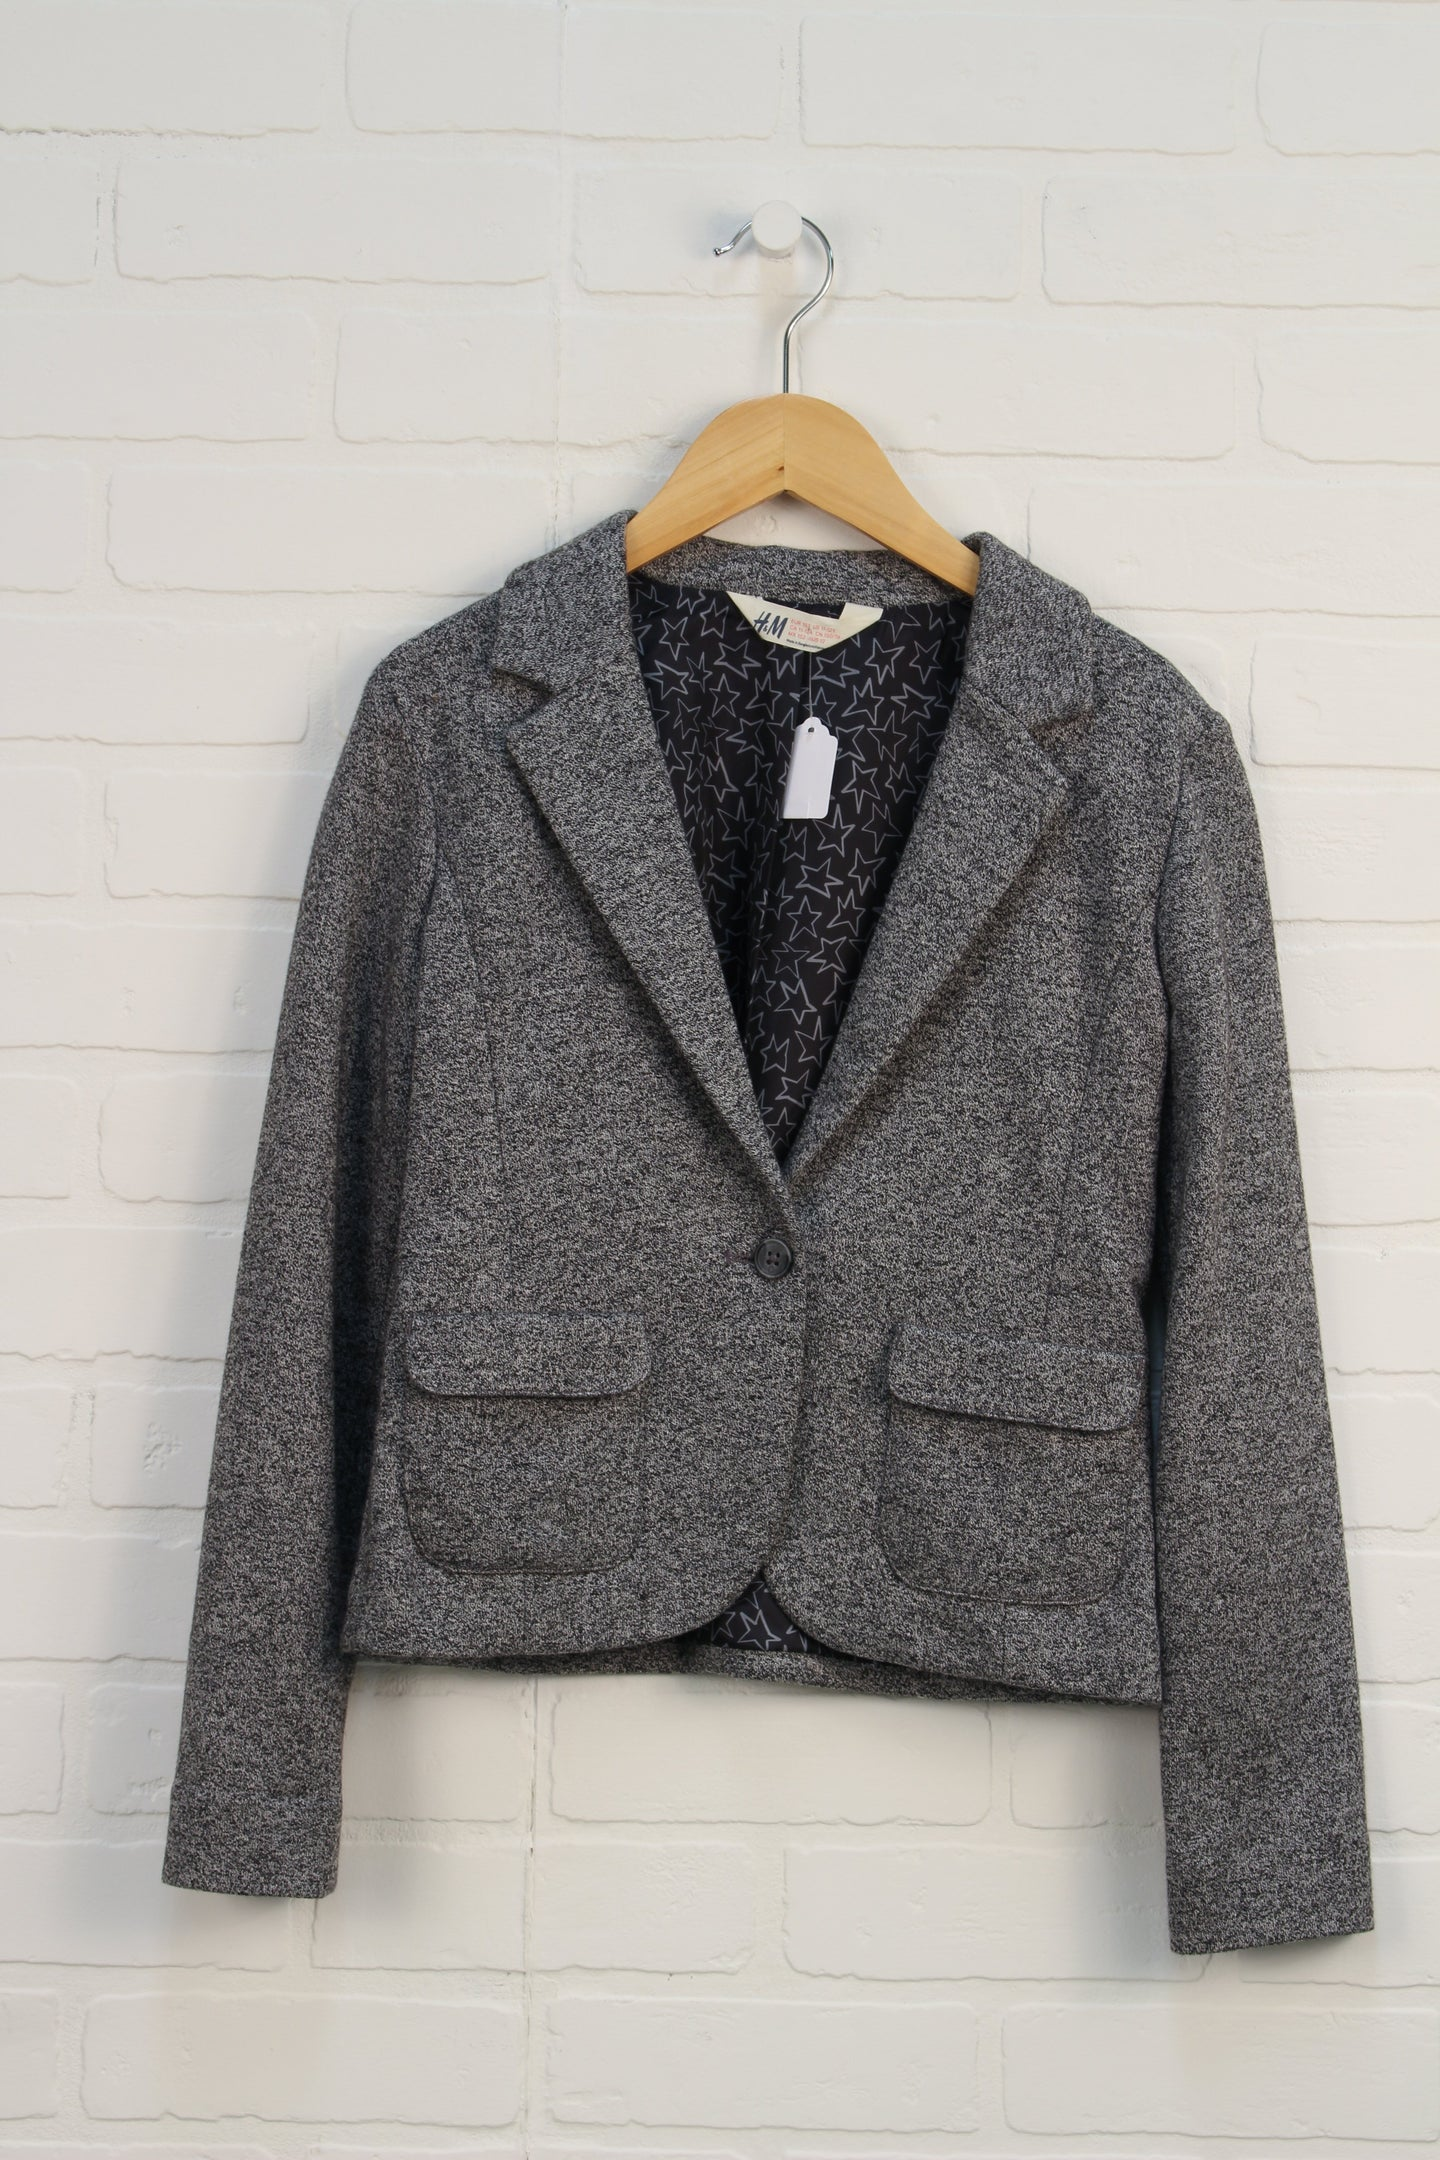 Salt + Pepper Blazer (Size 11-12)